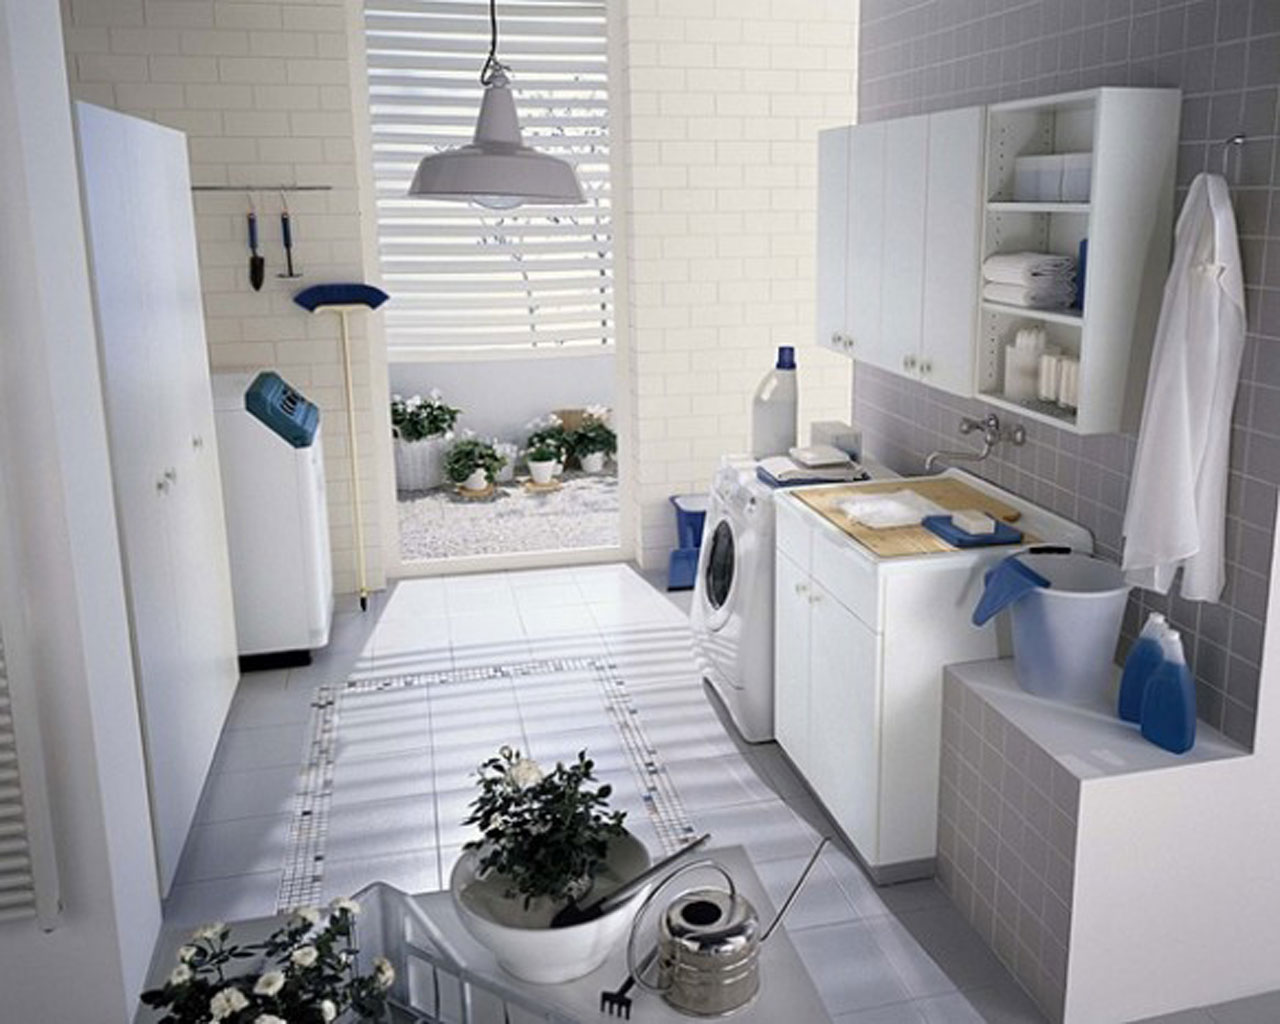 outstanding laundry room design 1280 x 1024 151 kb jpeg